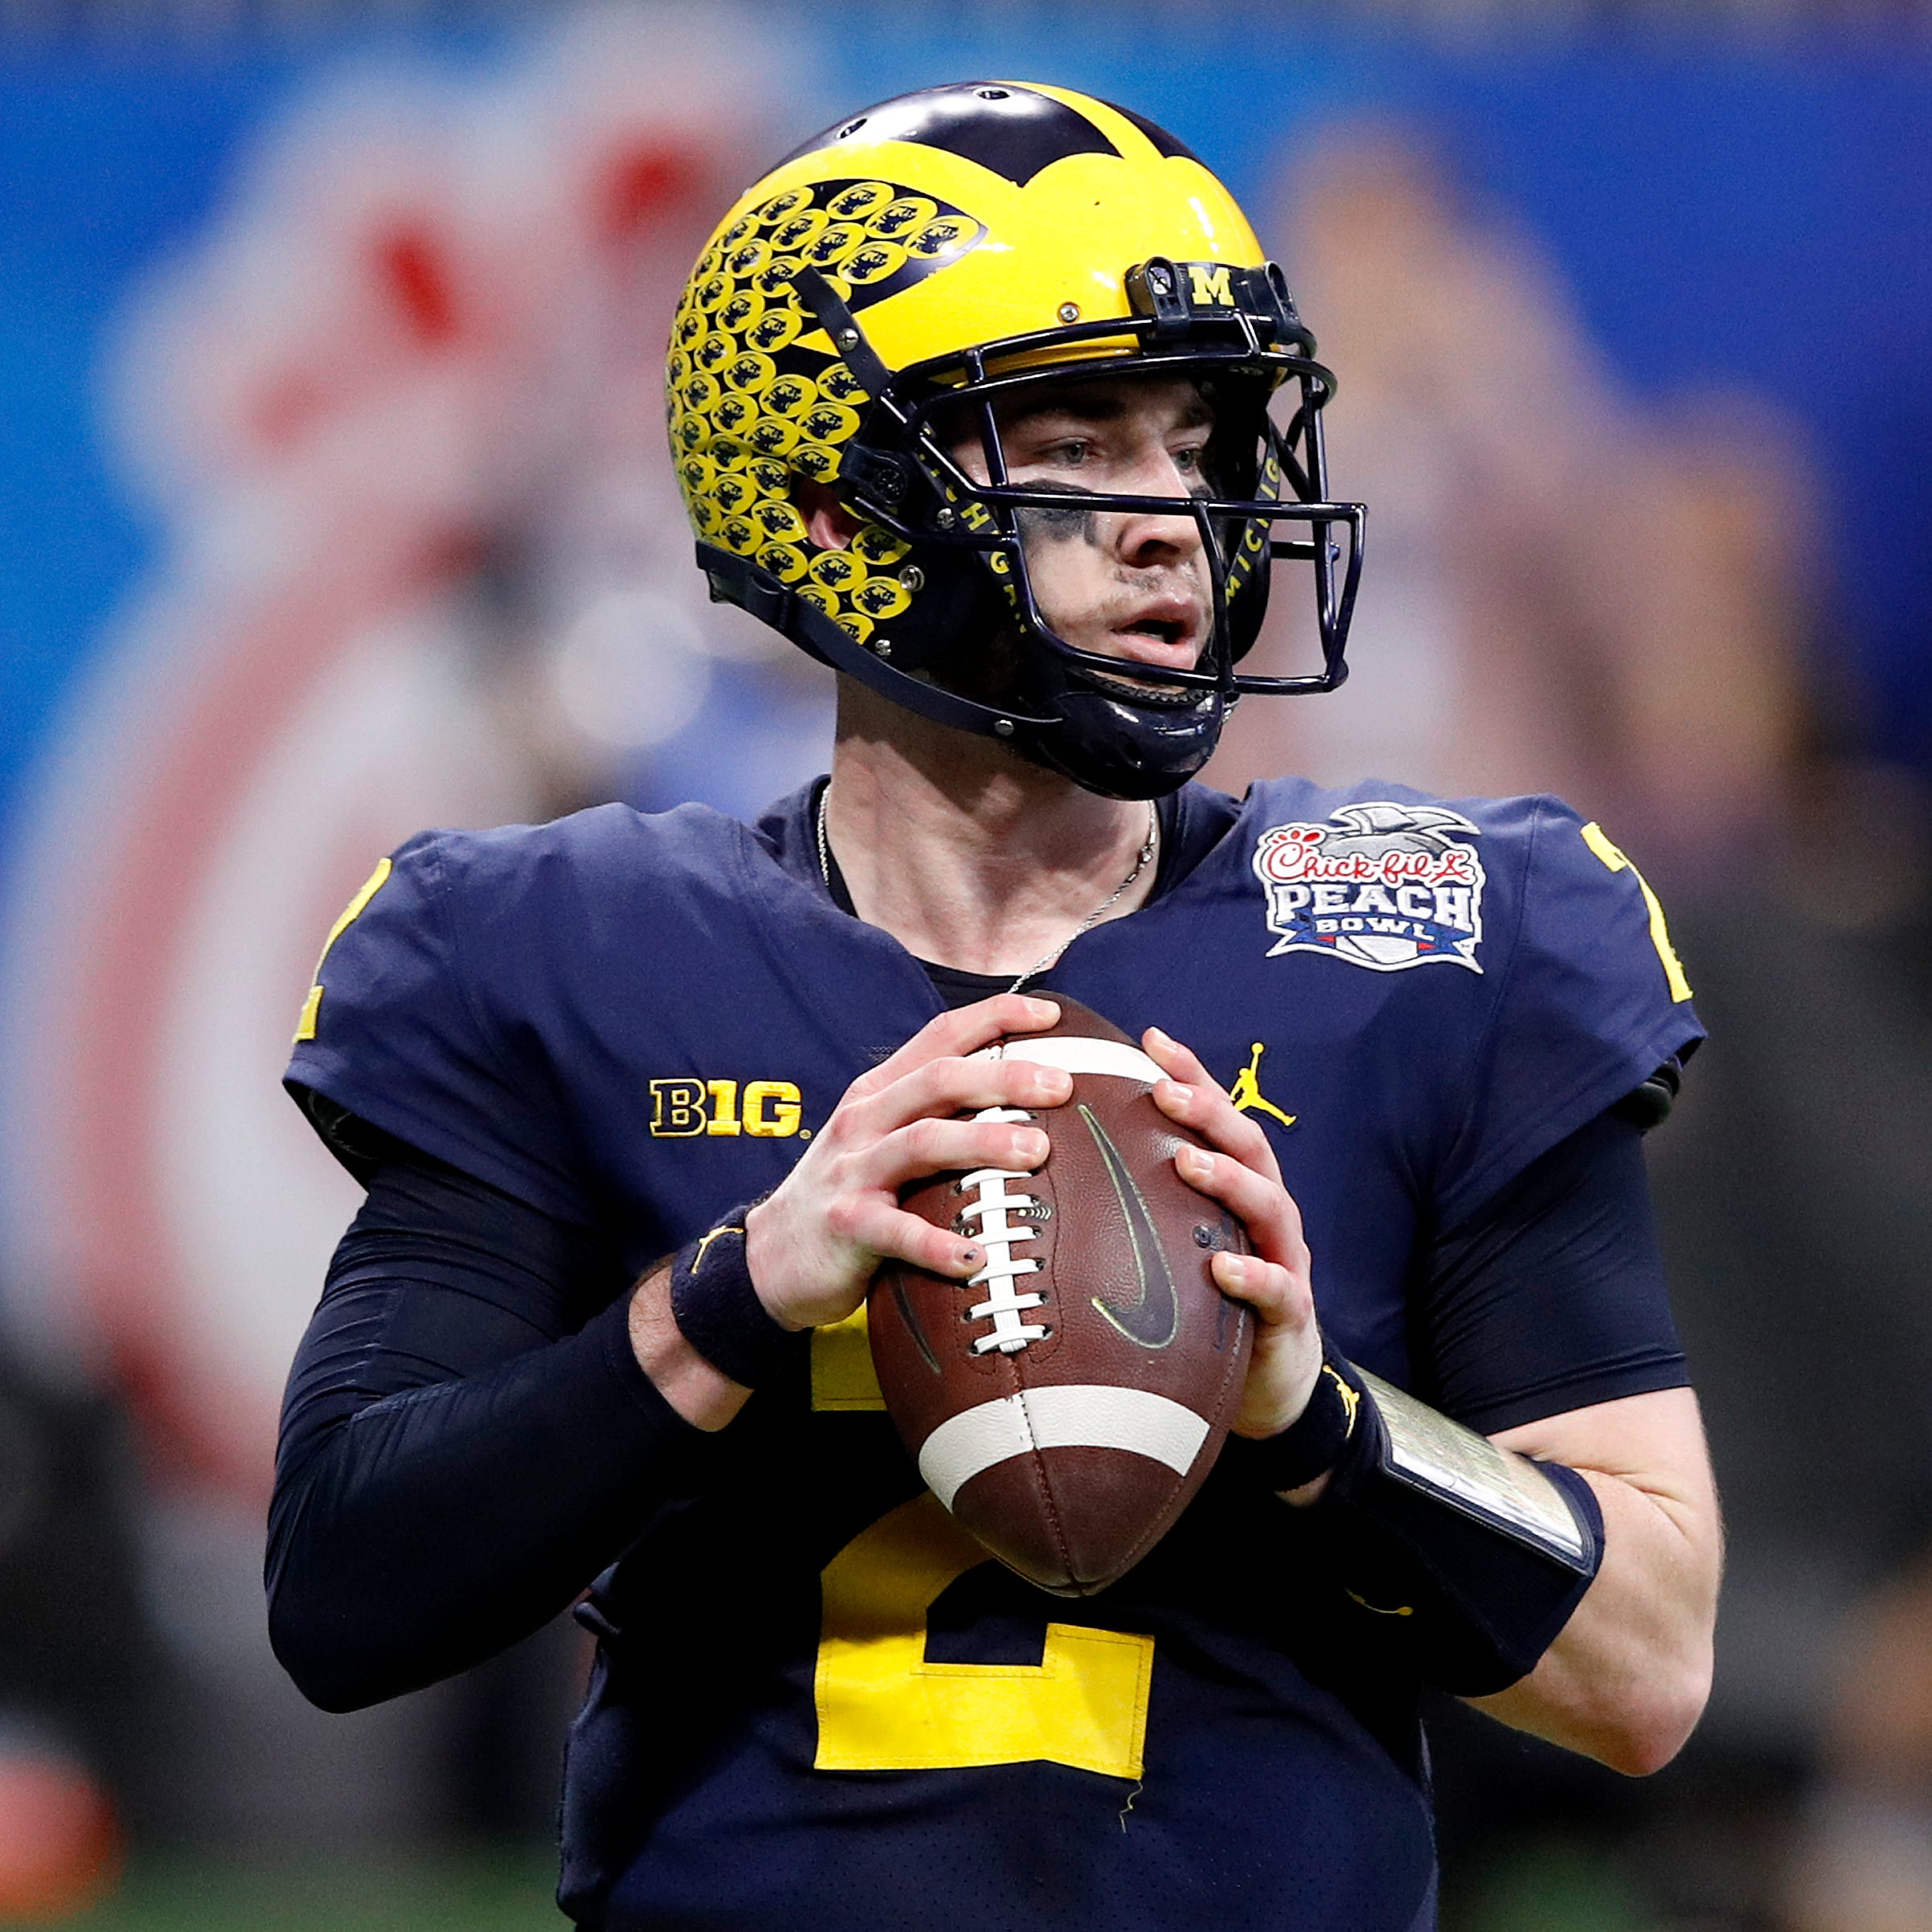 Michigan football: Shea Patterson the No. 1 QB, but that's not set in stone